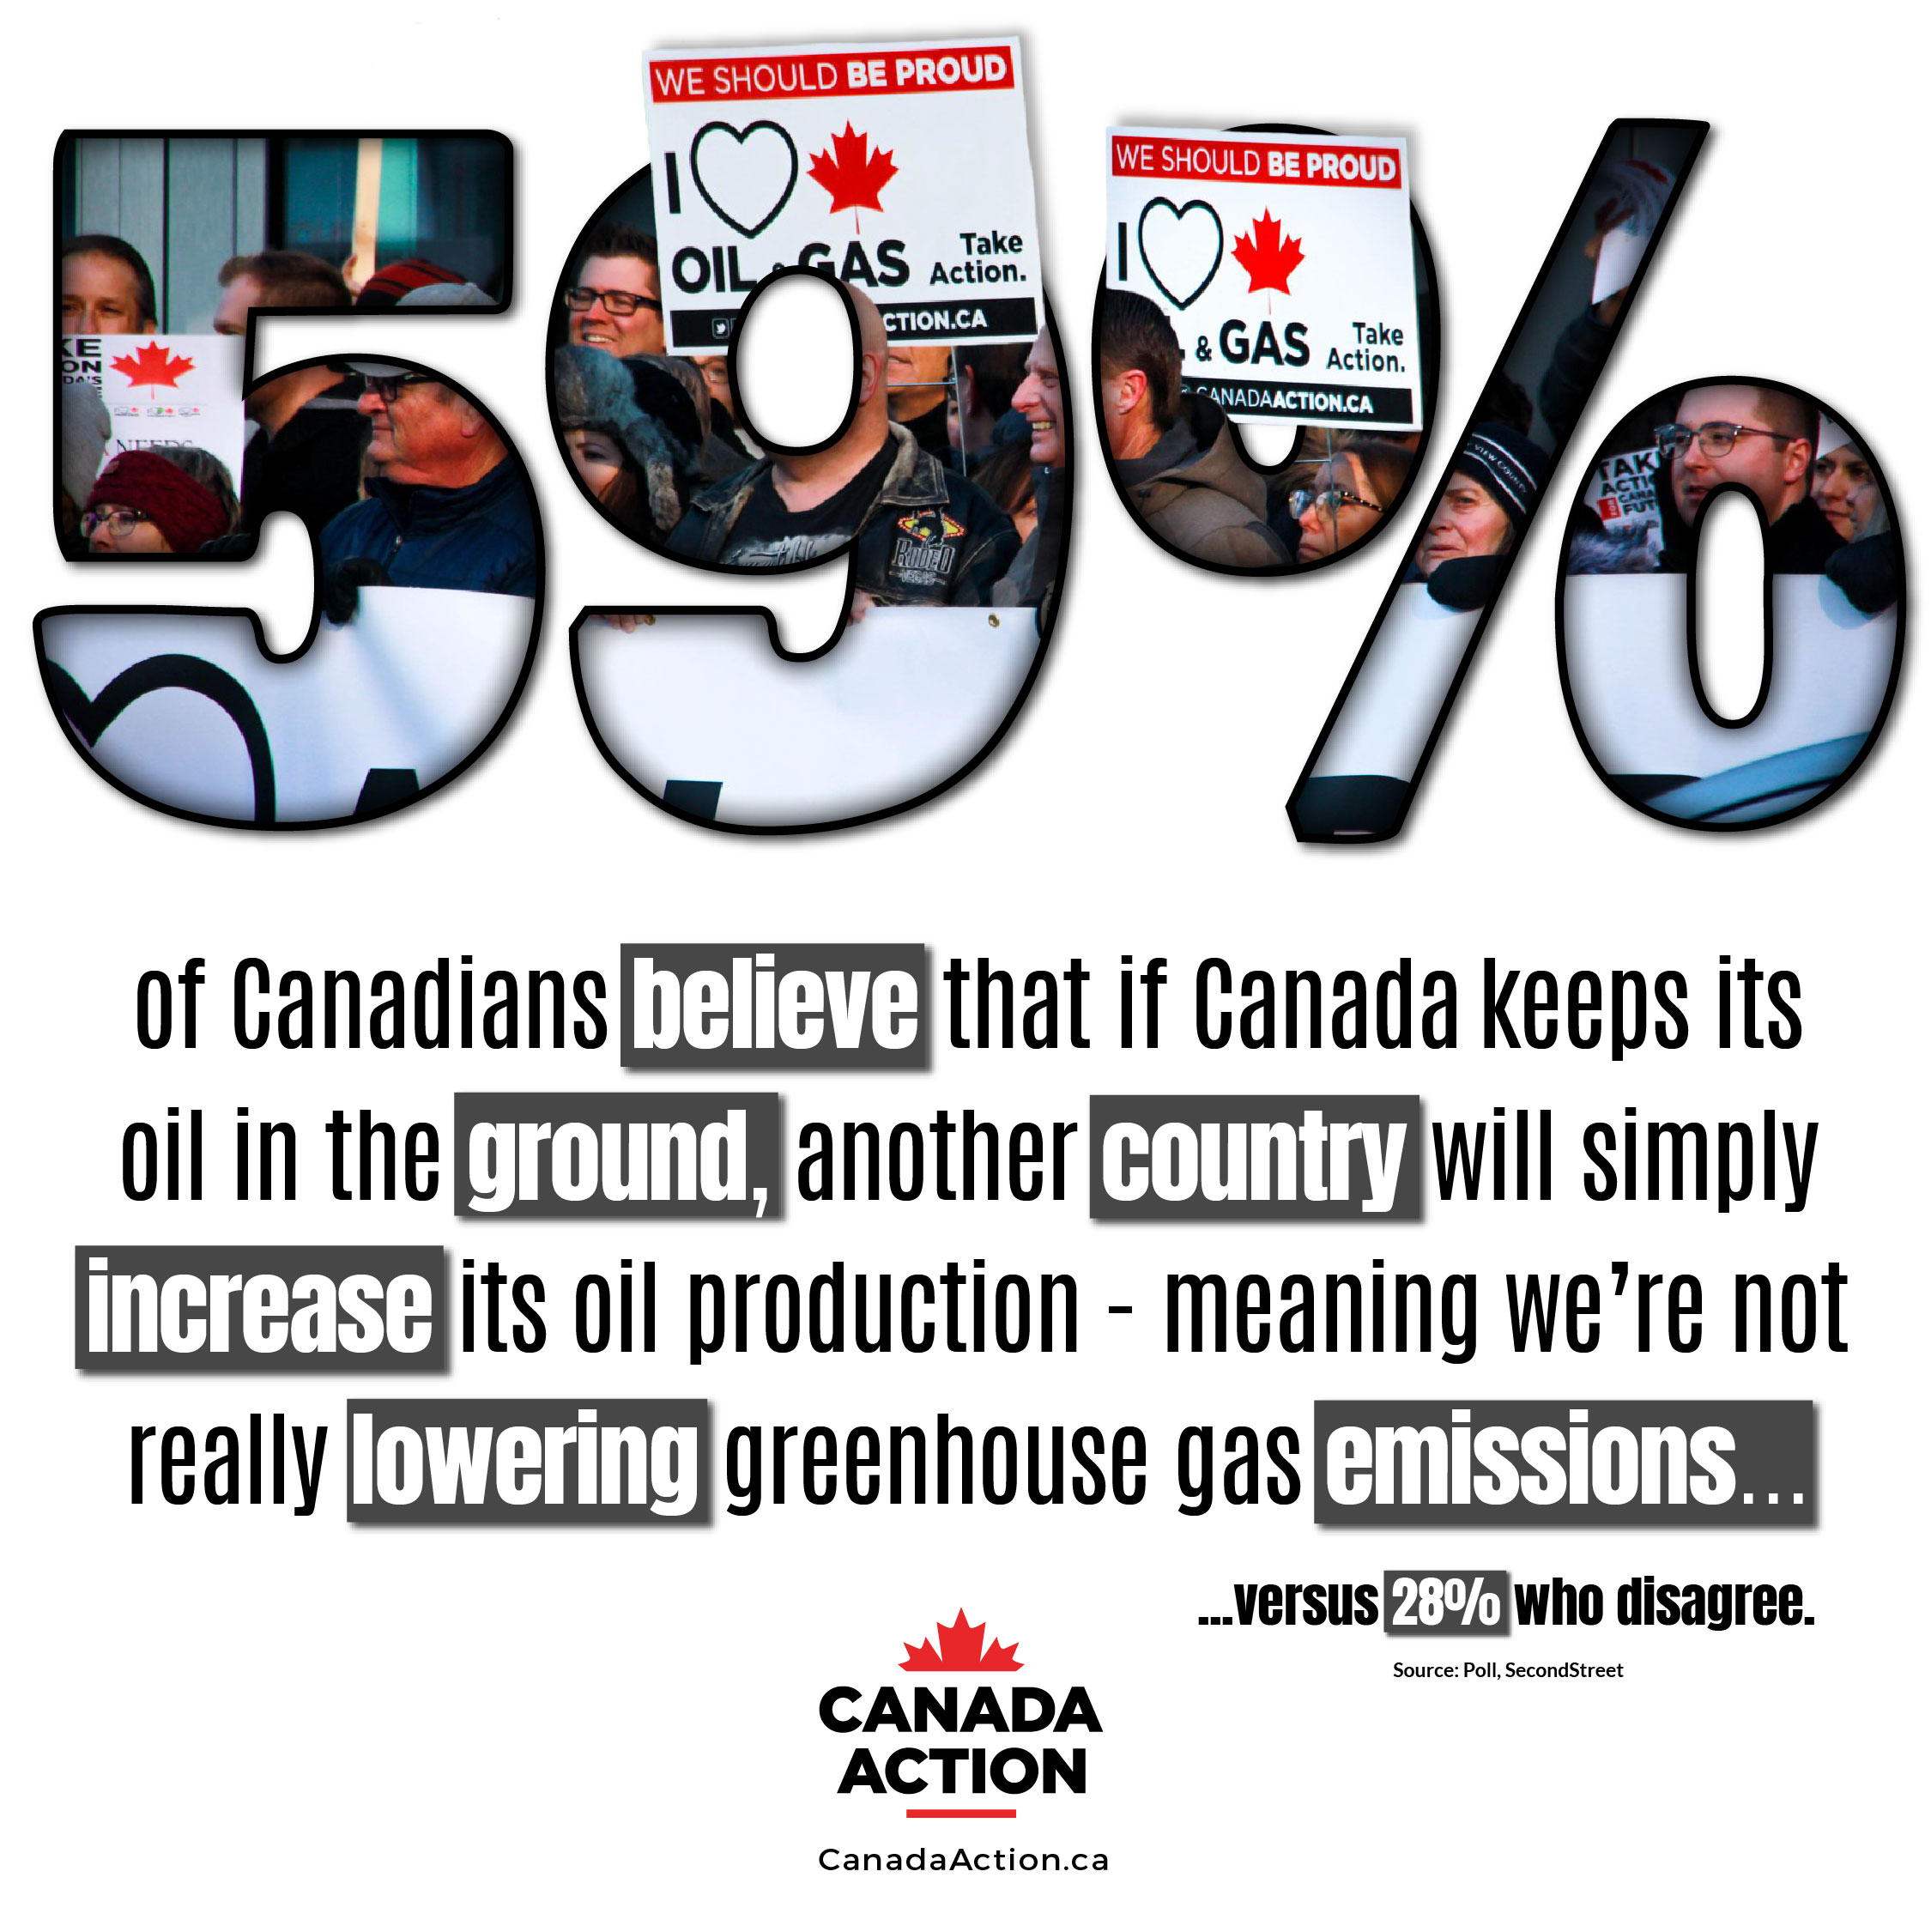 59% of Canadians believe if Canada does leaves its oil in the ground, another country will simply produce theirs